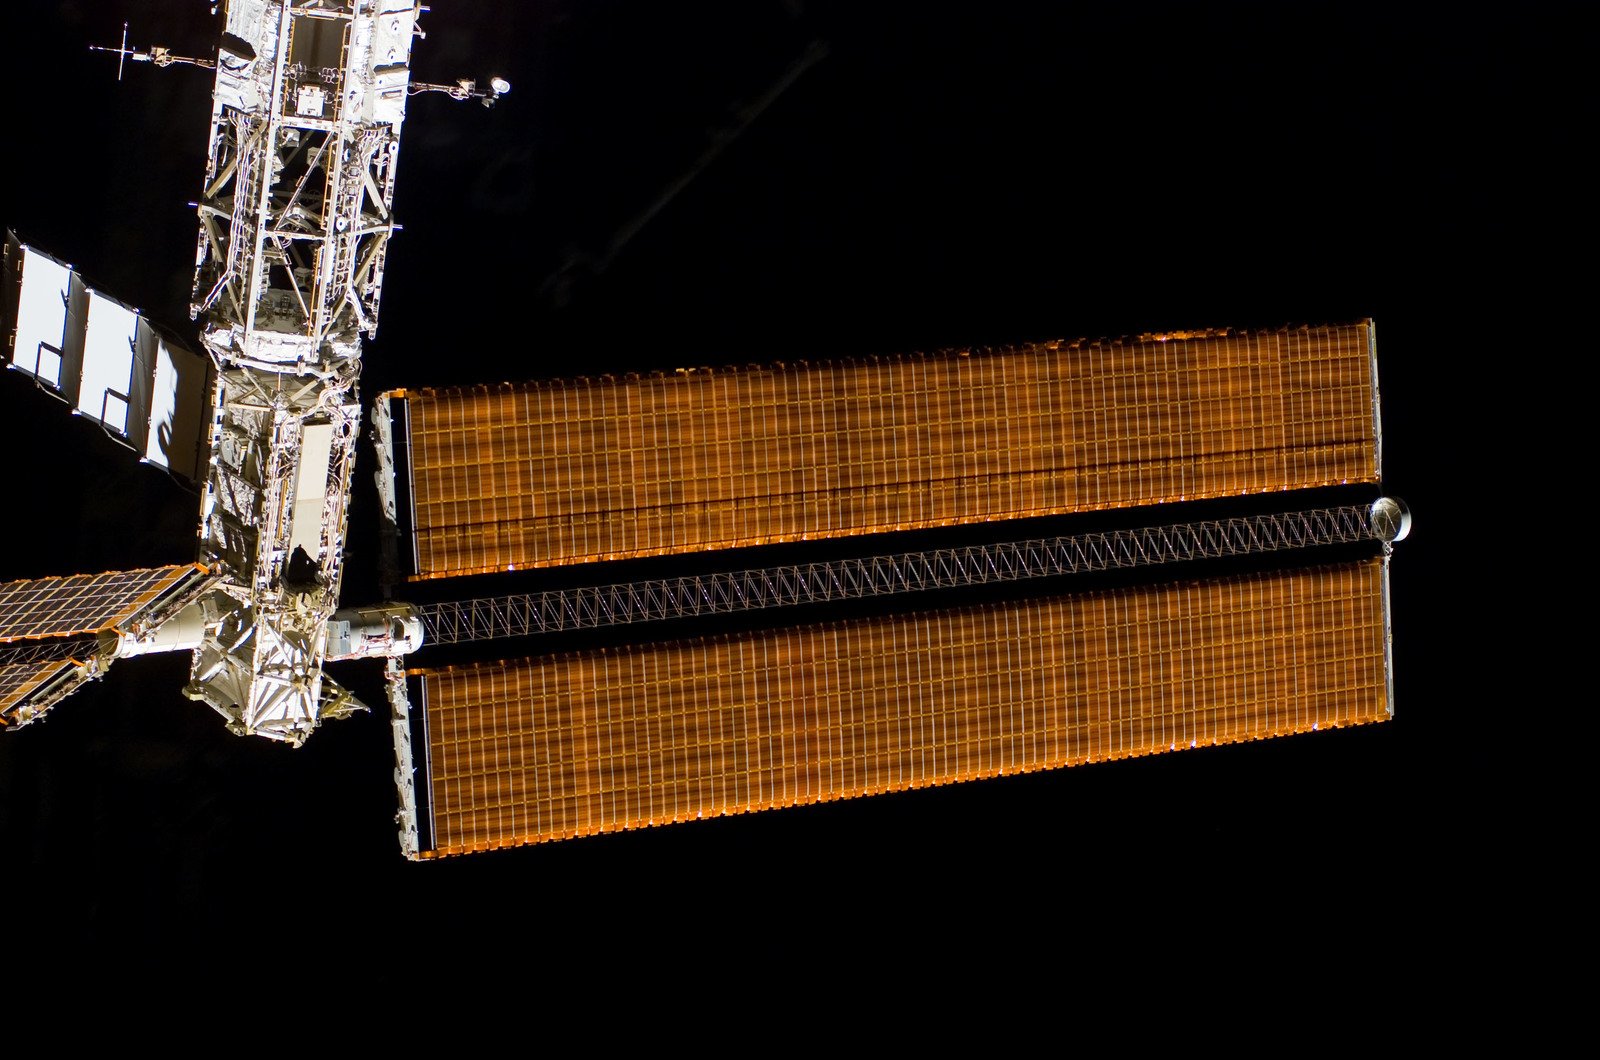 S122E009937 - STS-122 - Flyaround view of ISS after STS-122 Undocking